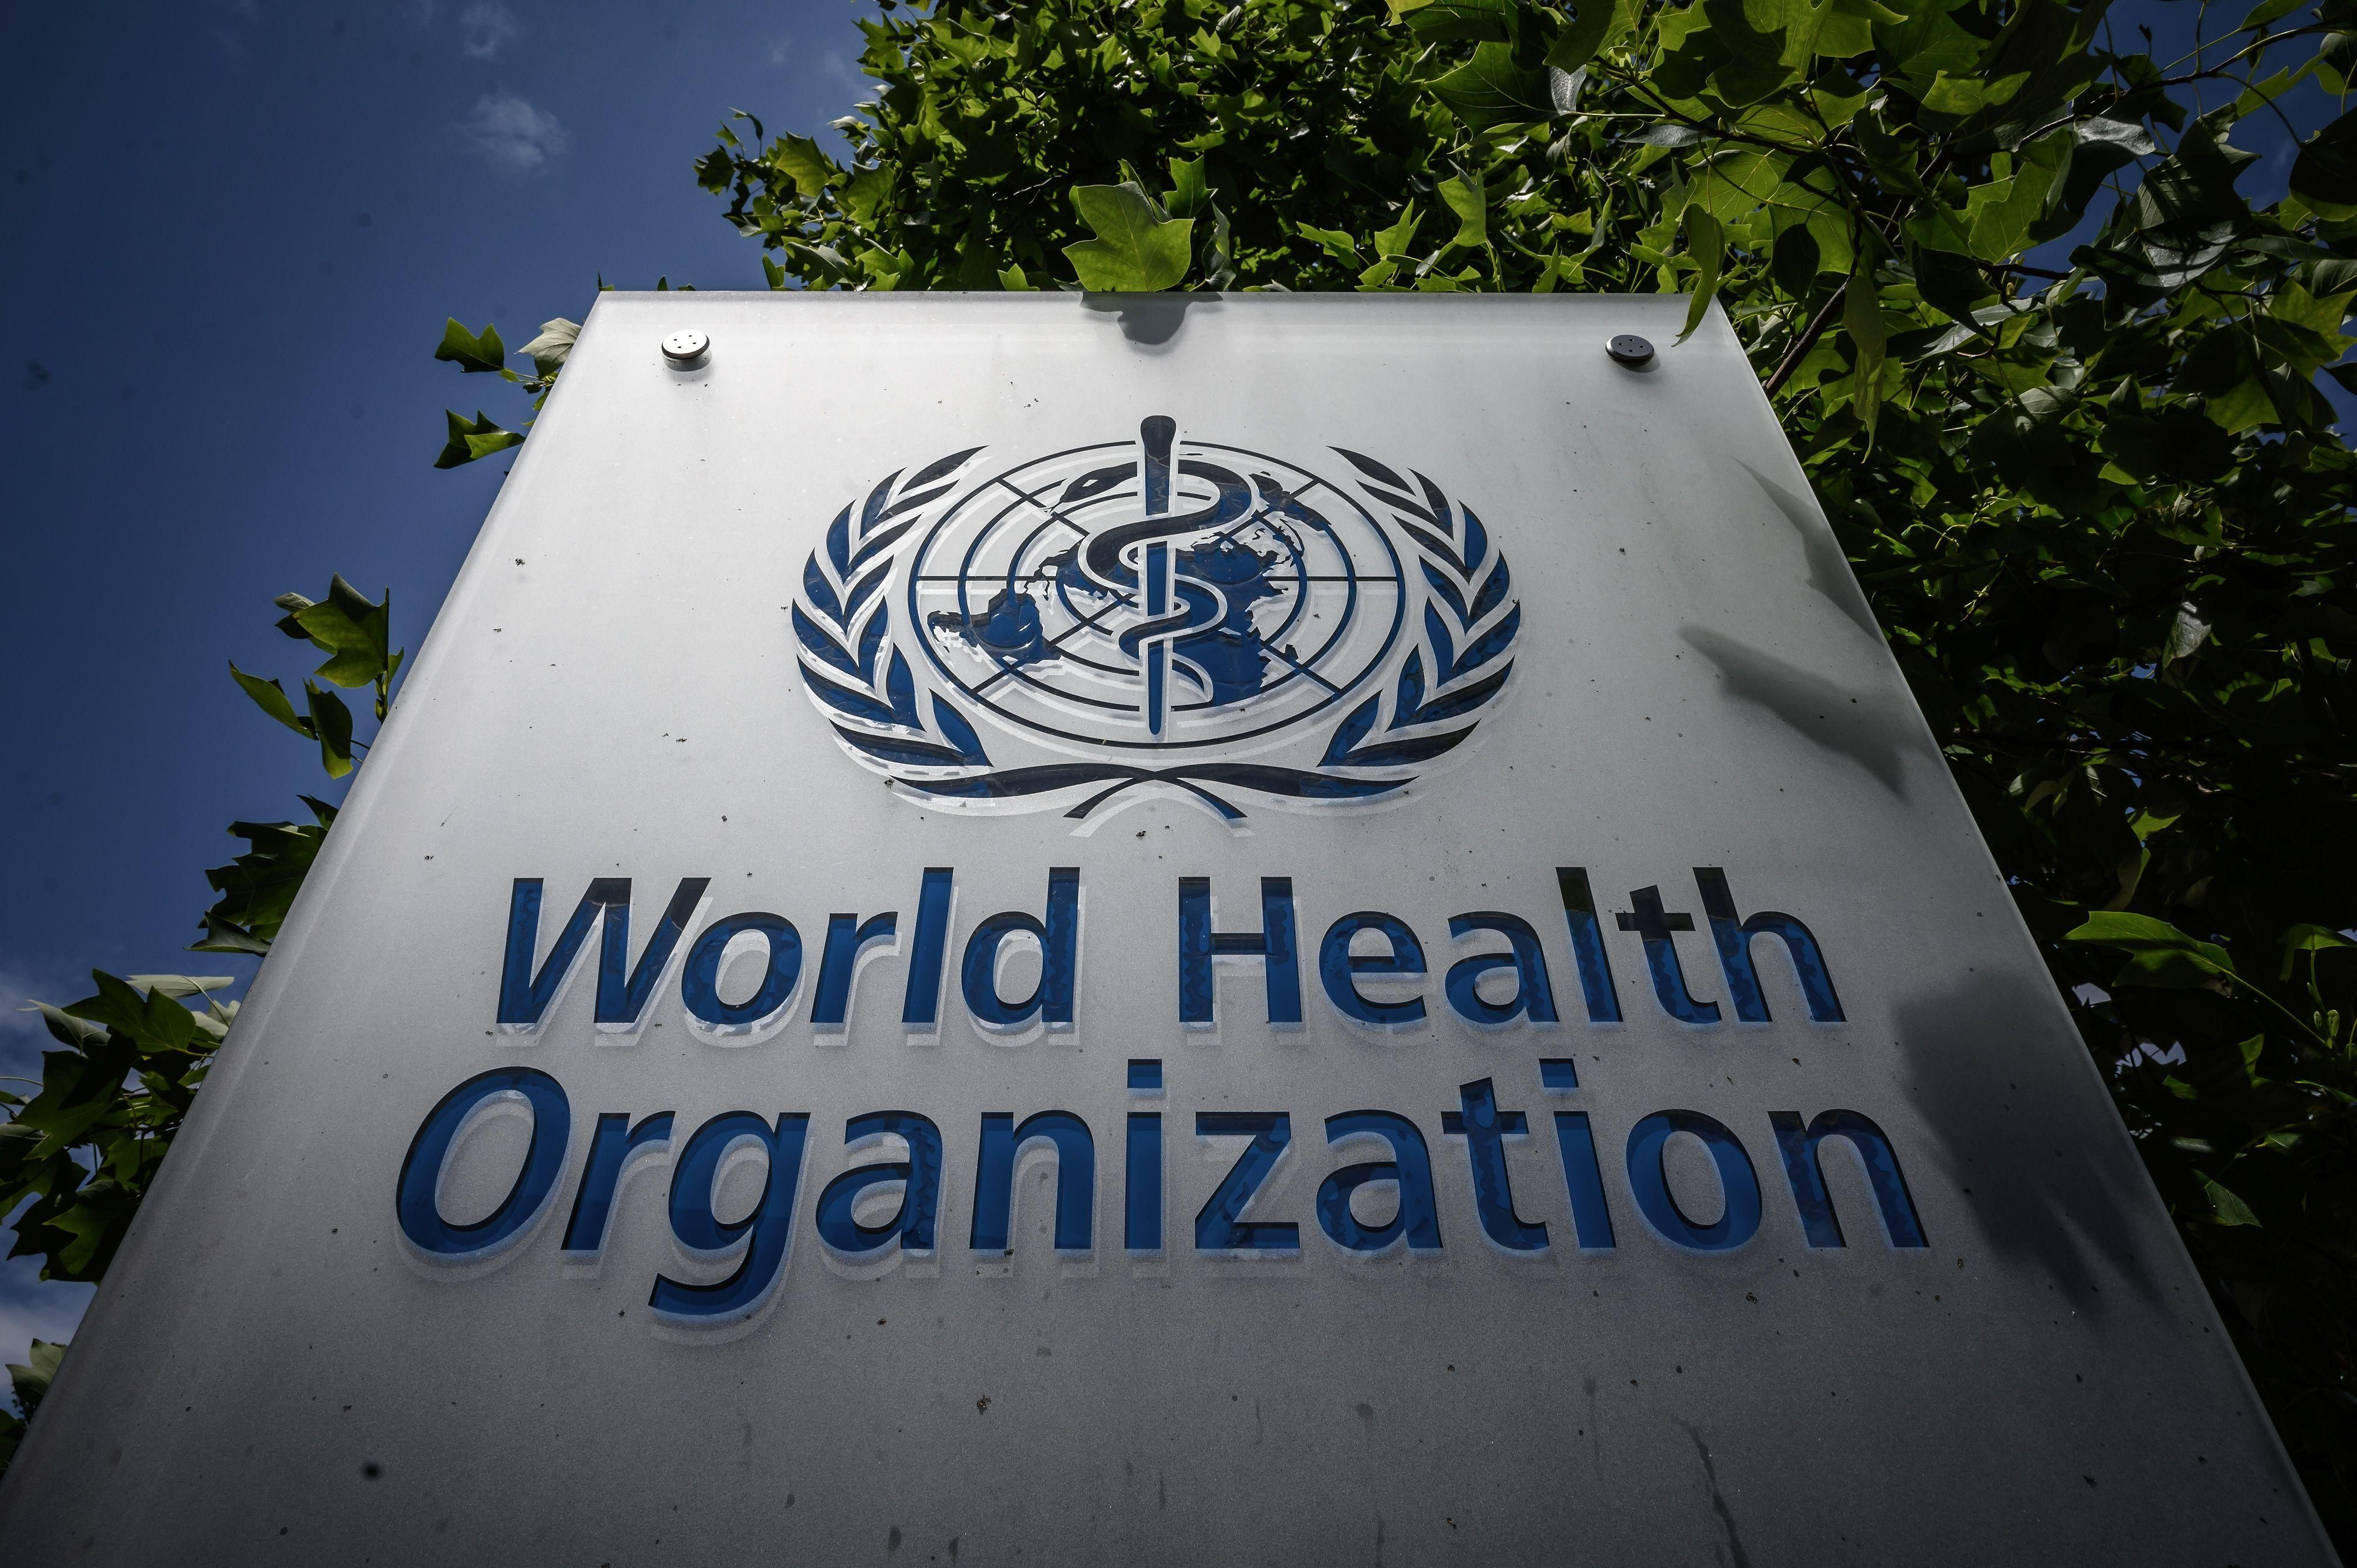 U.S. officially withdraws from World Health Organization